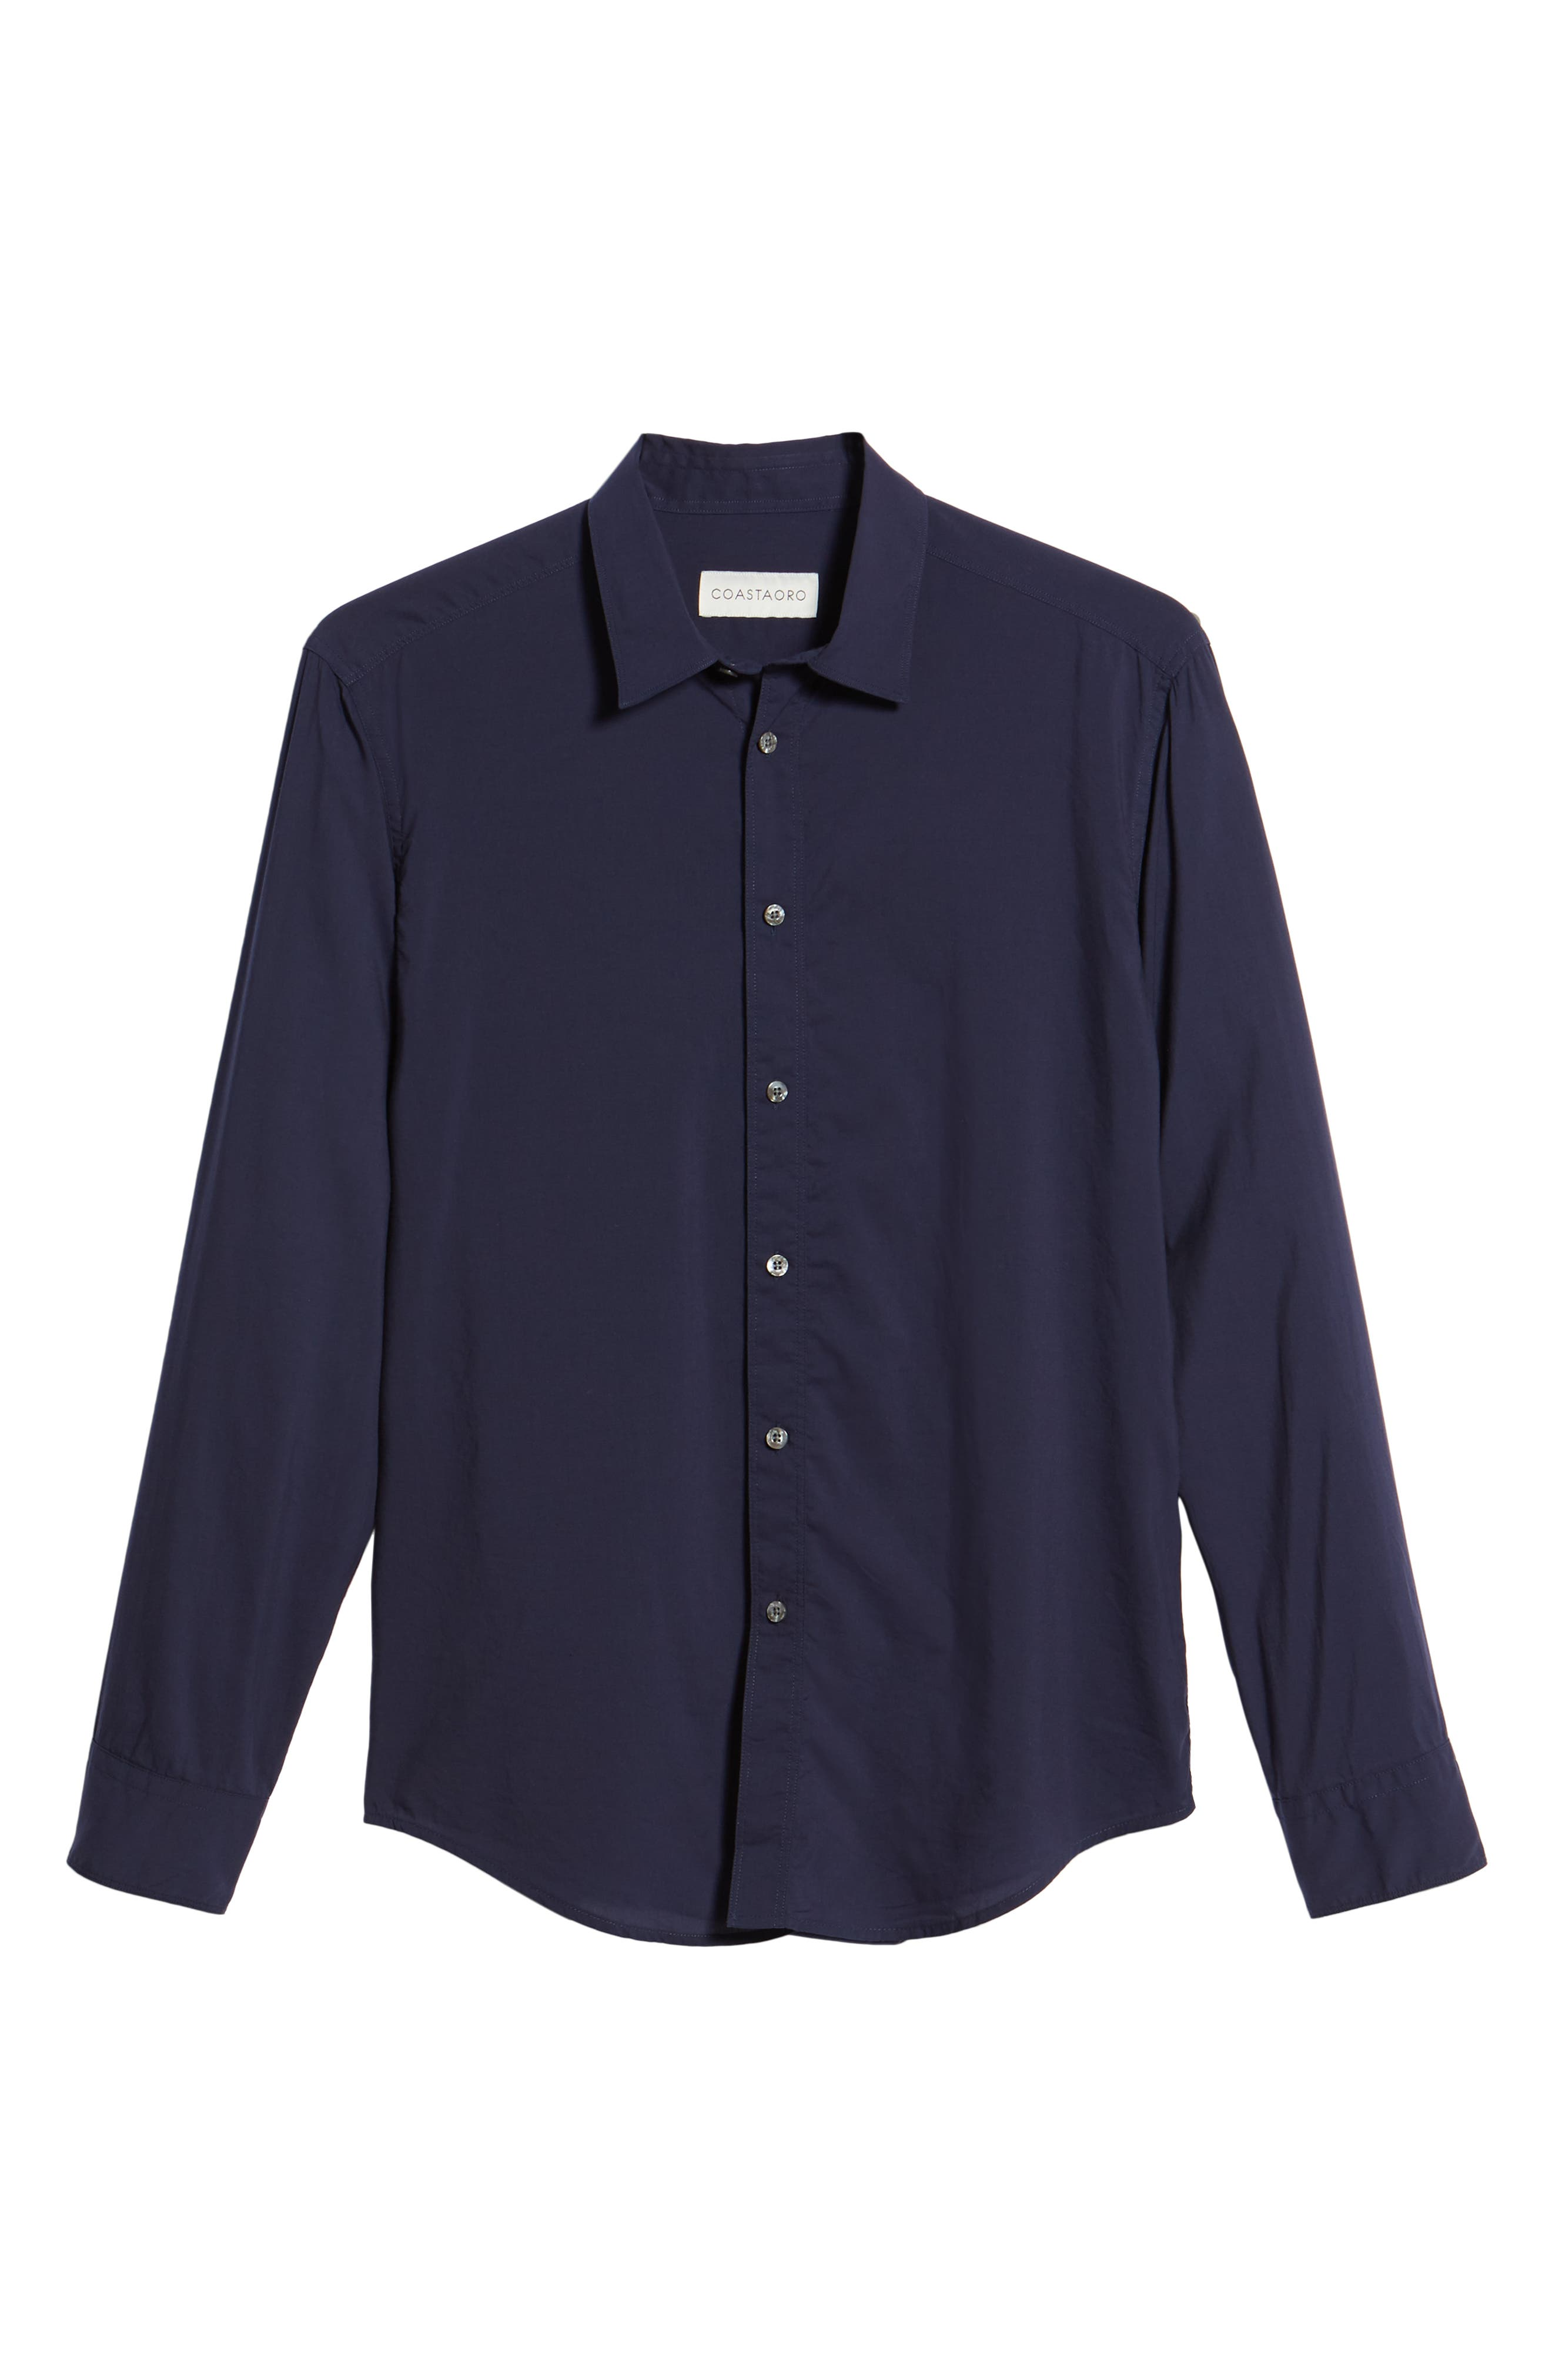 Pacifica Regular Fit Solid Sport Shirt,                             Alternate thumbnail 6, color,